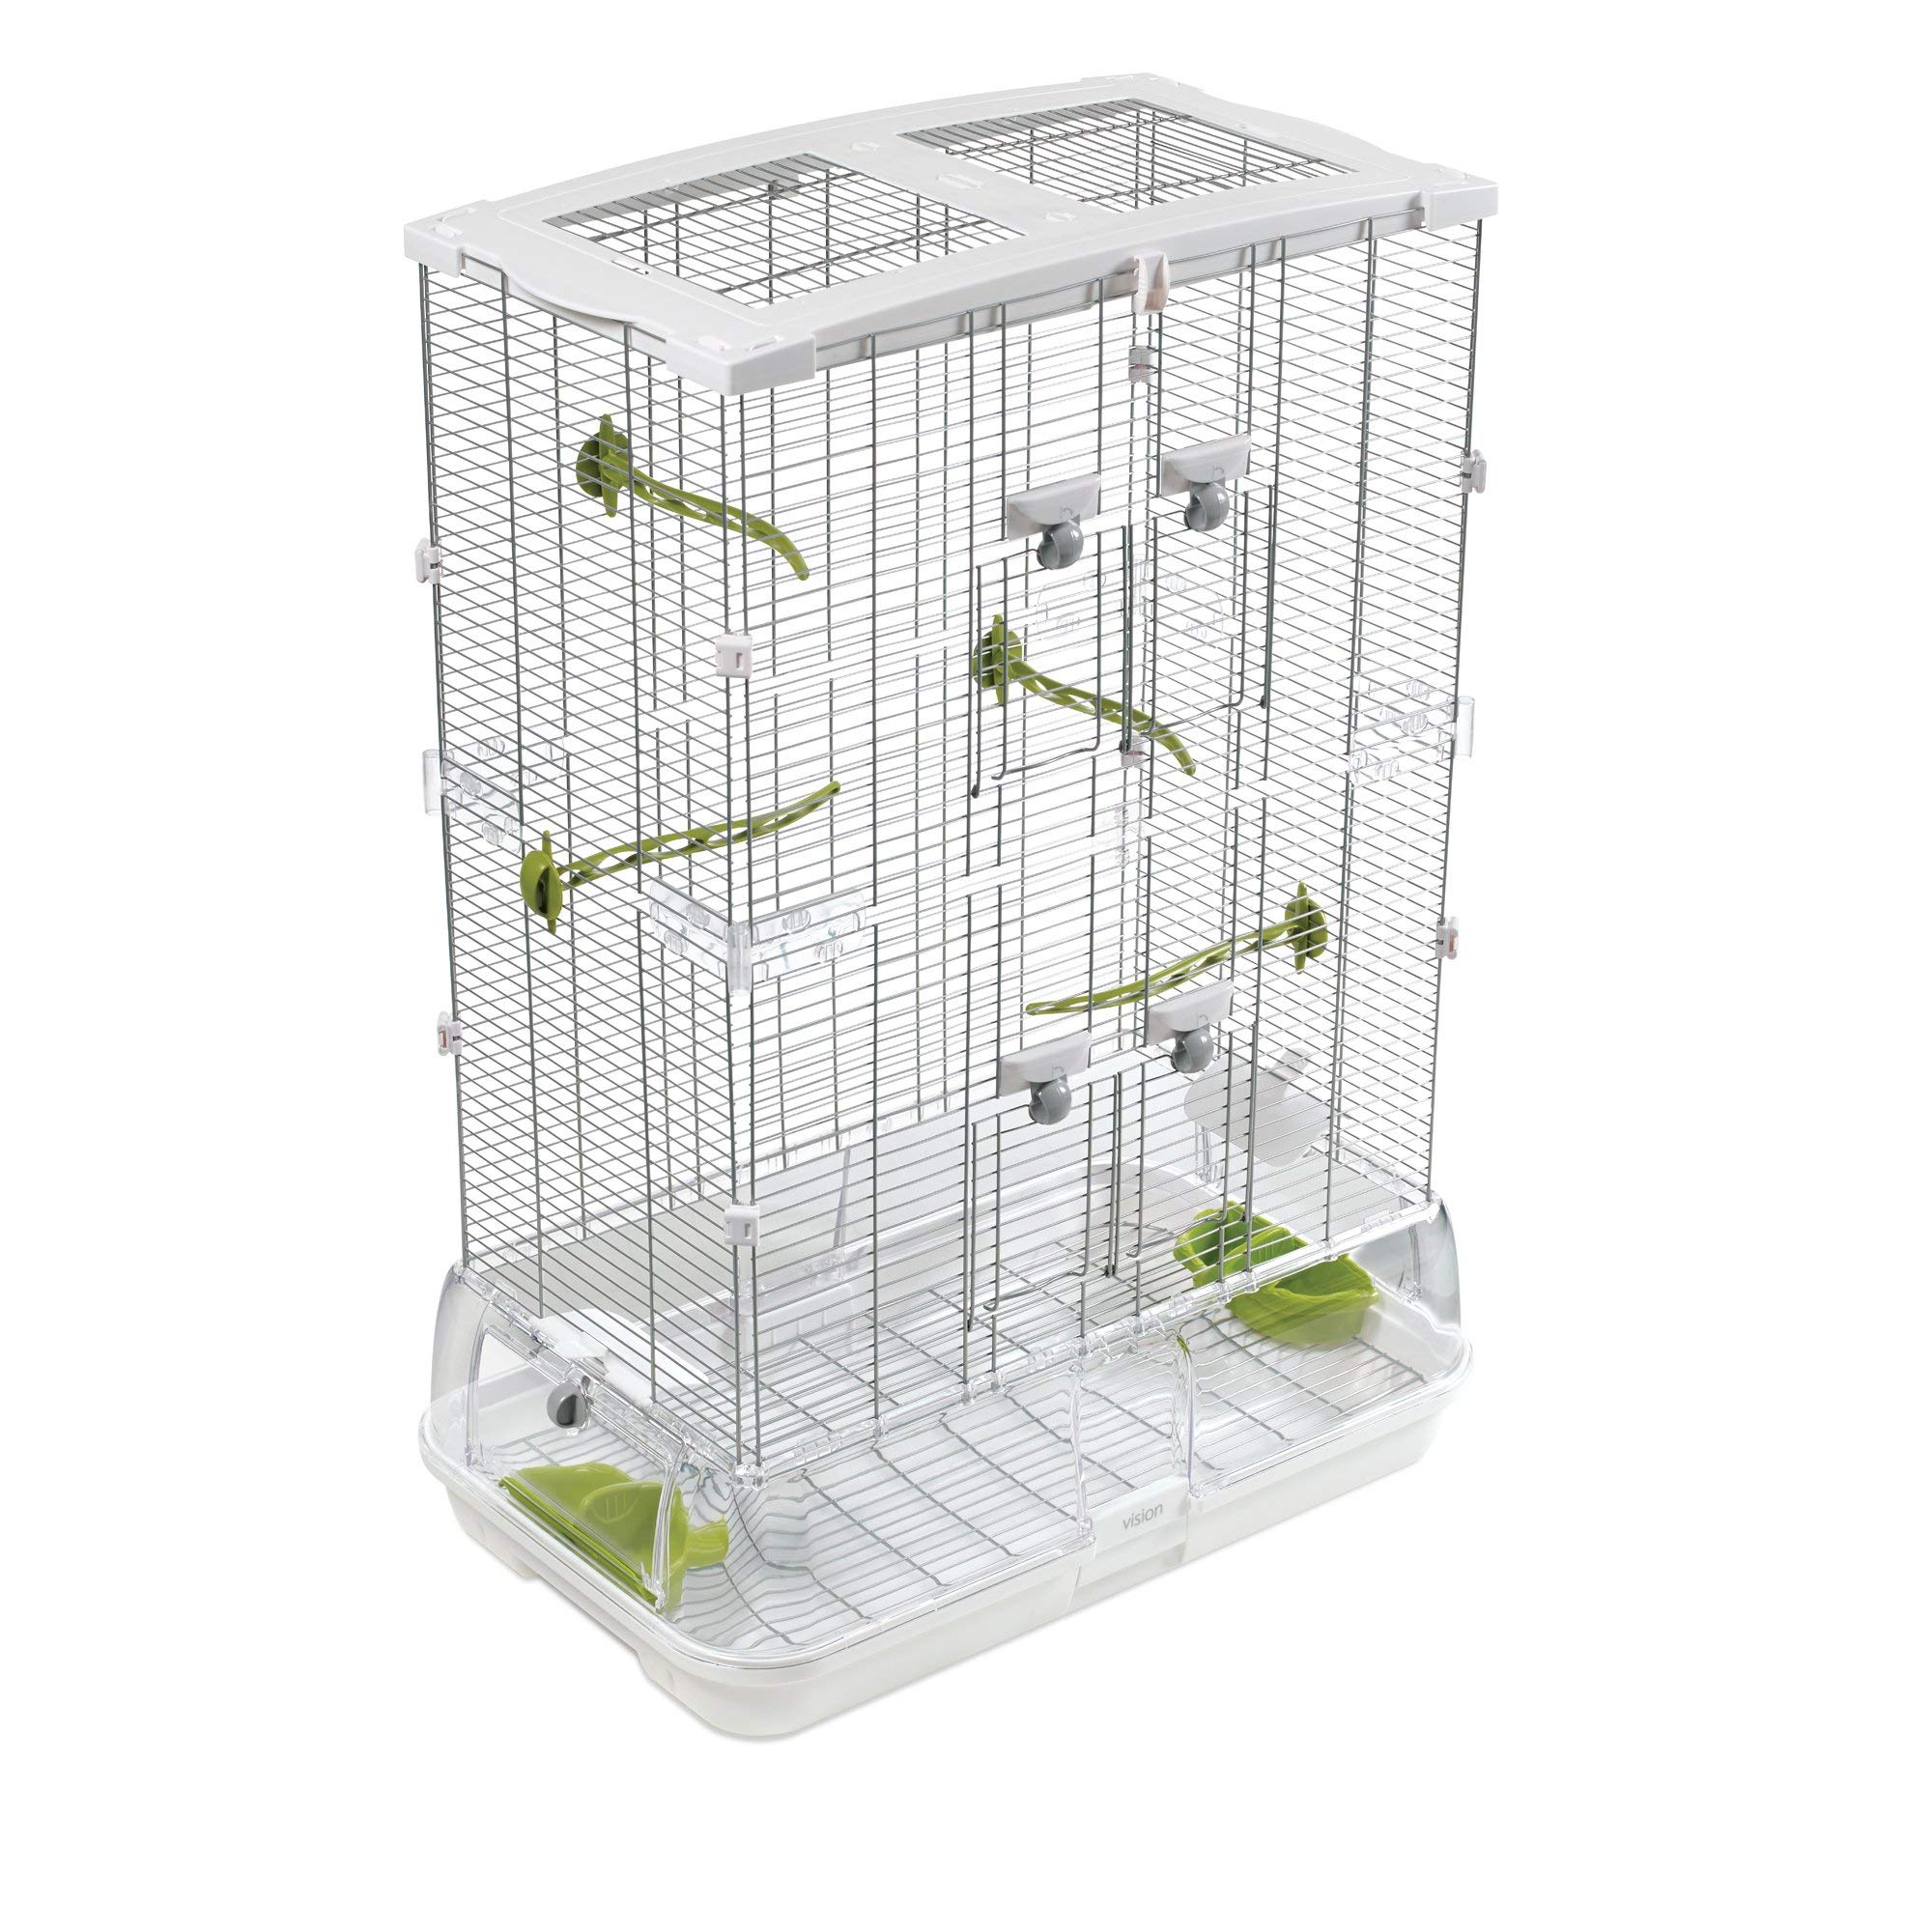 Hagen Vision Bird Cage Model M02, 24.6'' L X 15.6'' W X 34.3'' H, 16.6 LBS, White by Hagen